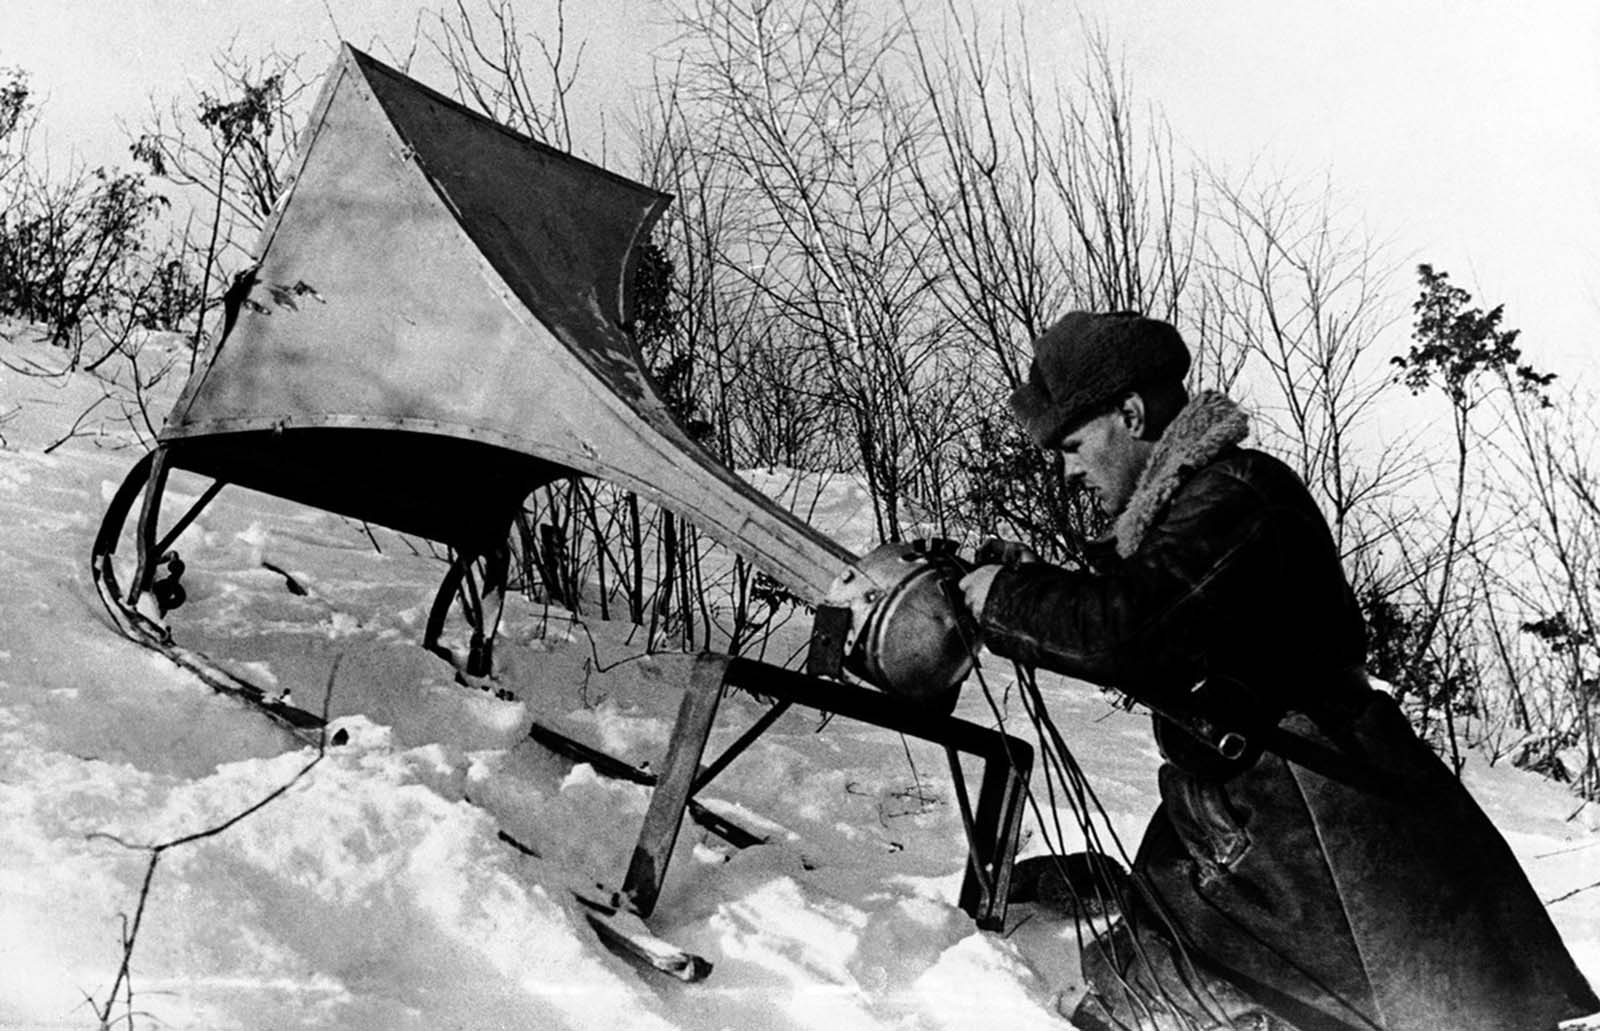 A field loud-speaker is set up to broadcast propaganda to German soldiers, somewhere in Russia, on April 21, 1942.